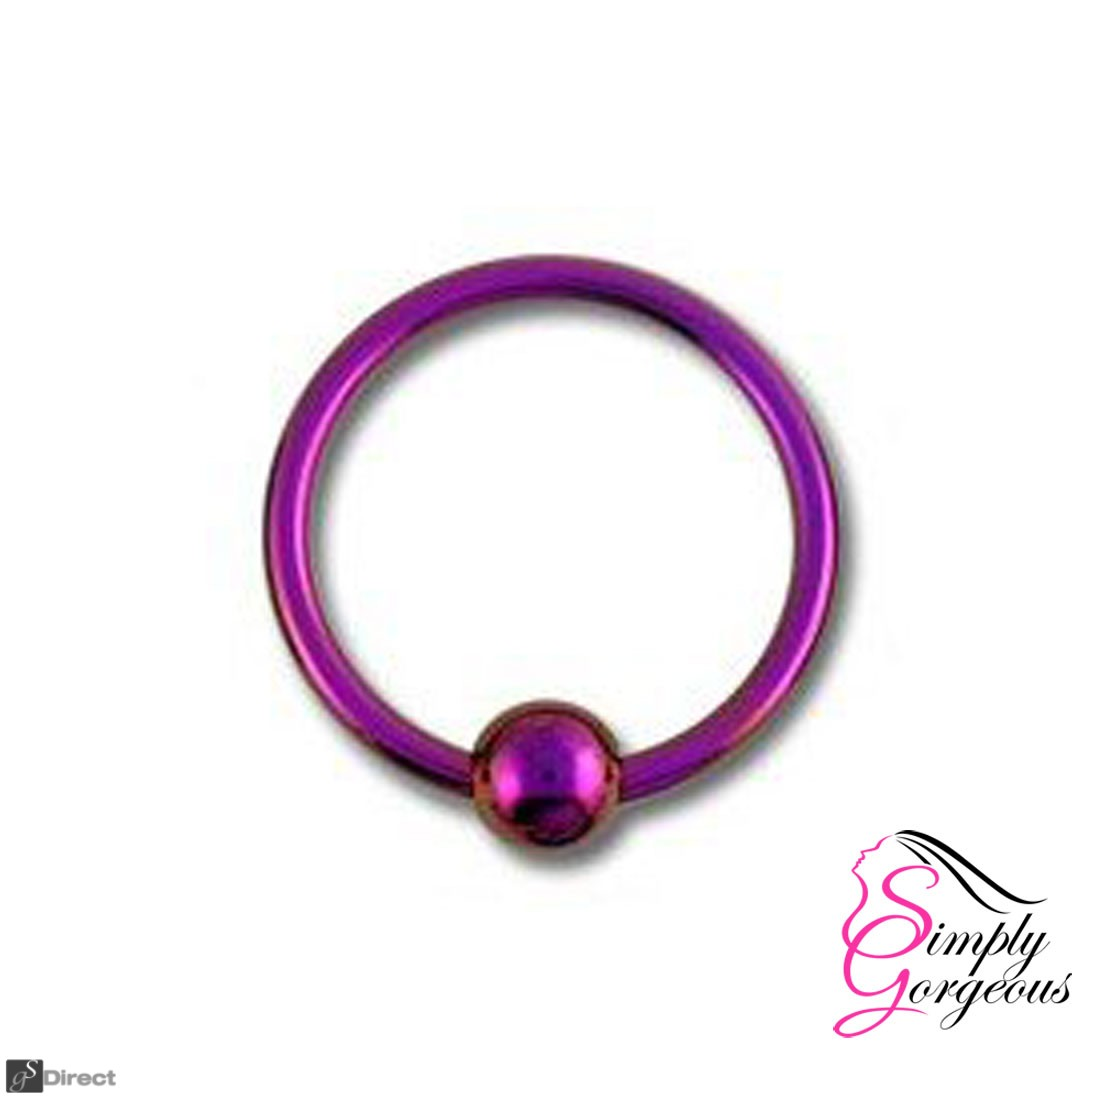 Surgical Steel Hoop Ring Piercing Ball Closure Lip Ear Nose Eyebrow - Pink